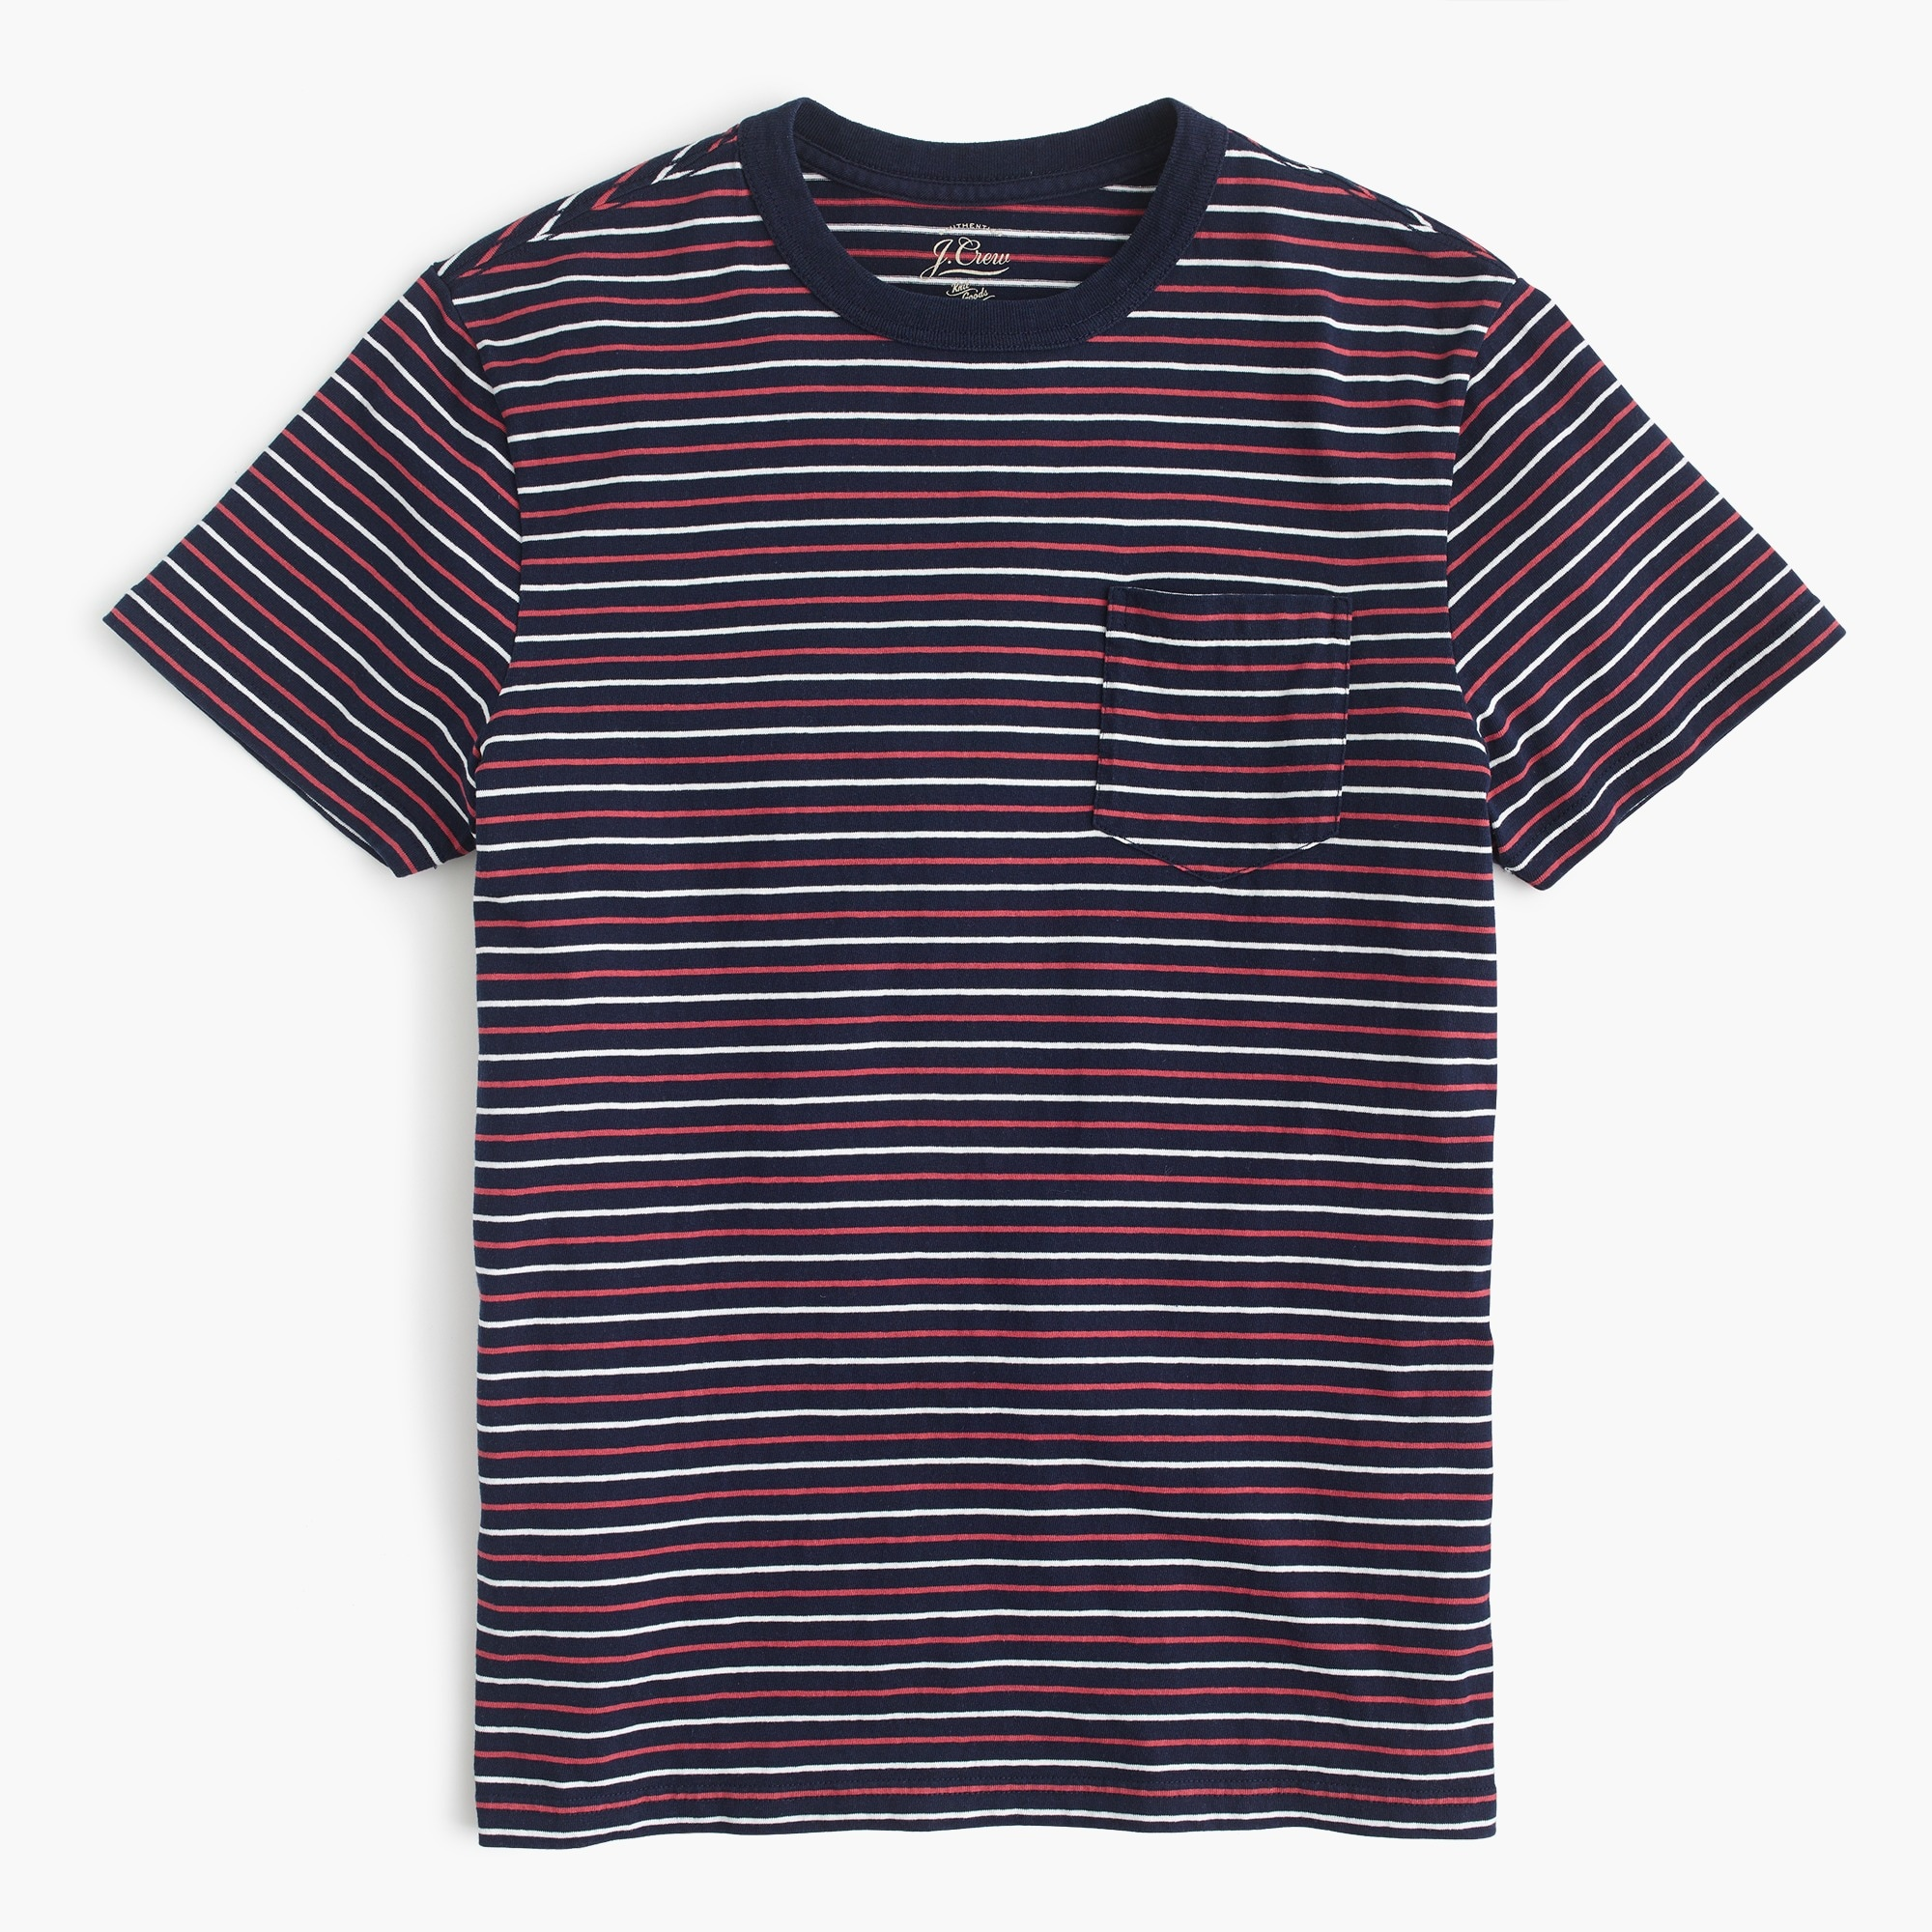 Tall cotton T-shirt in multistripe